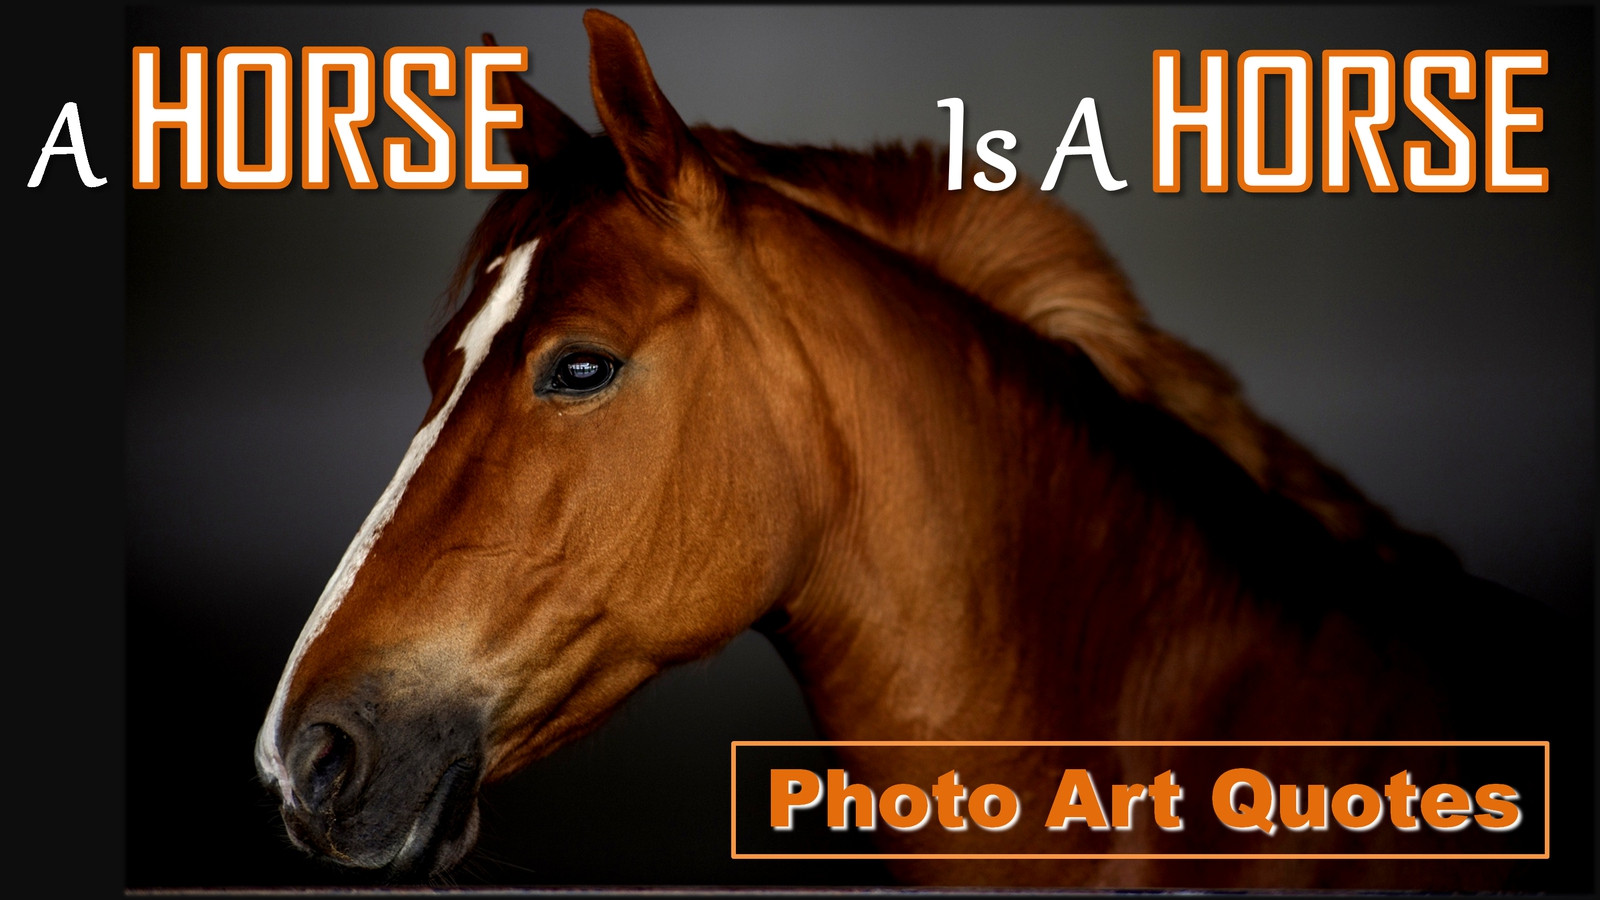 A Horse Is A Horse Photo Art Quotes